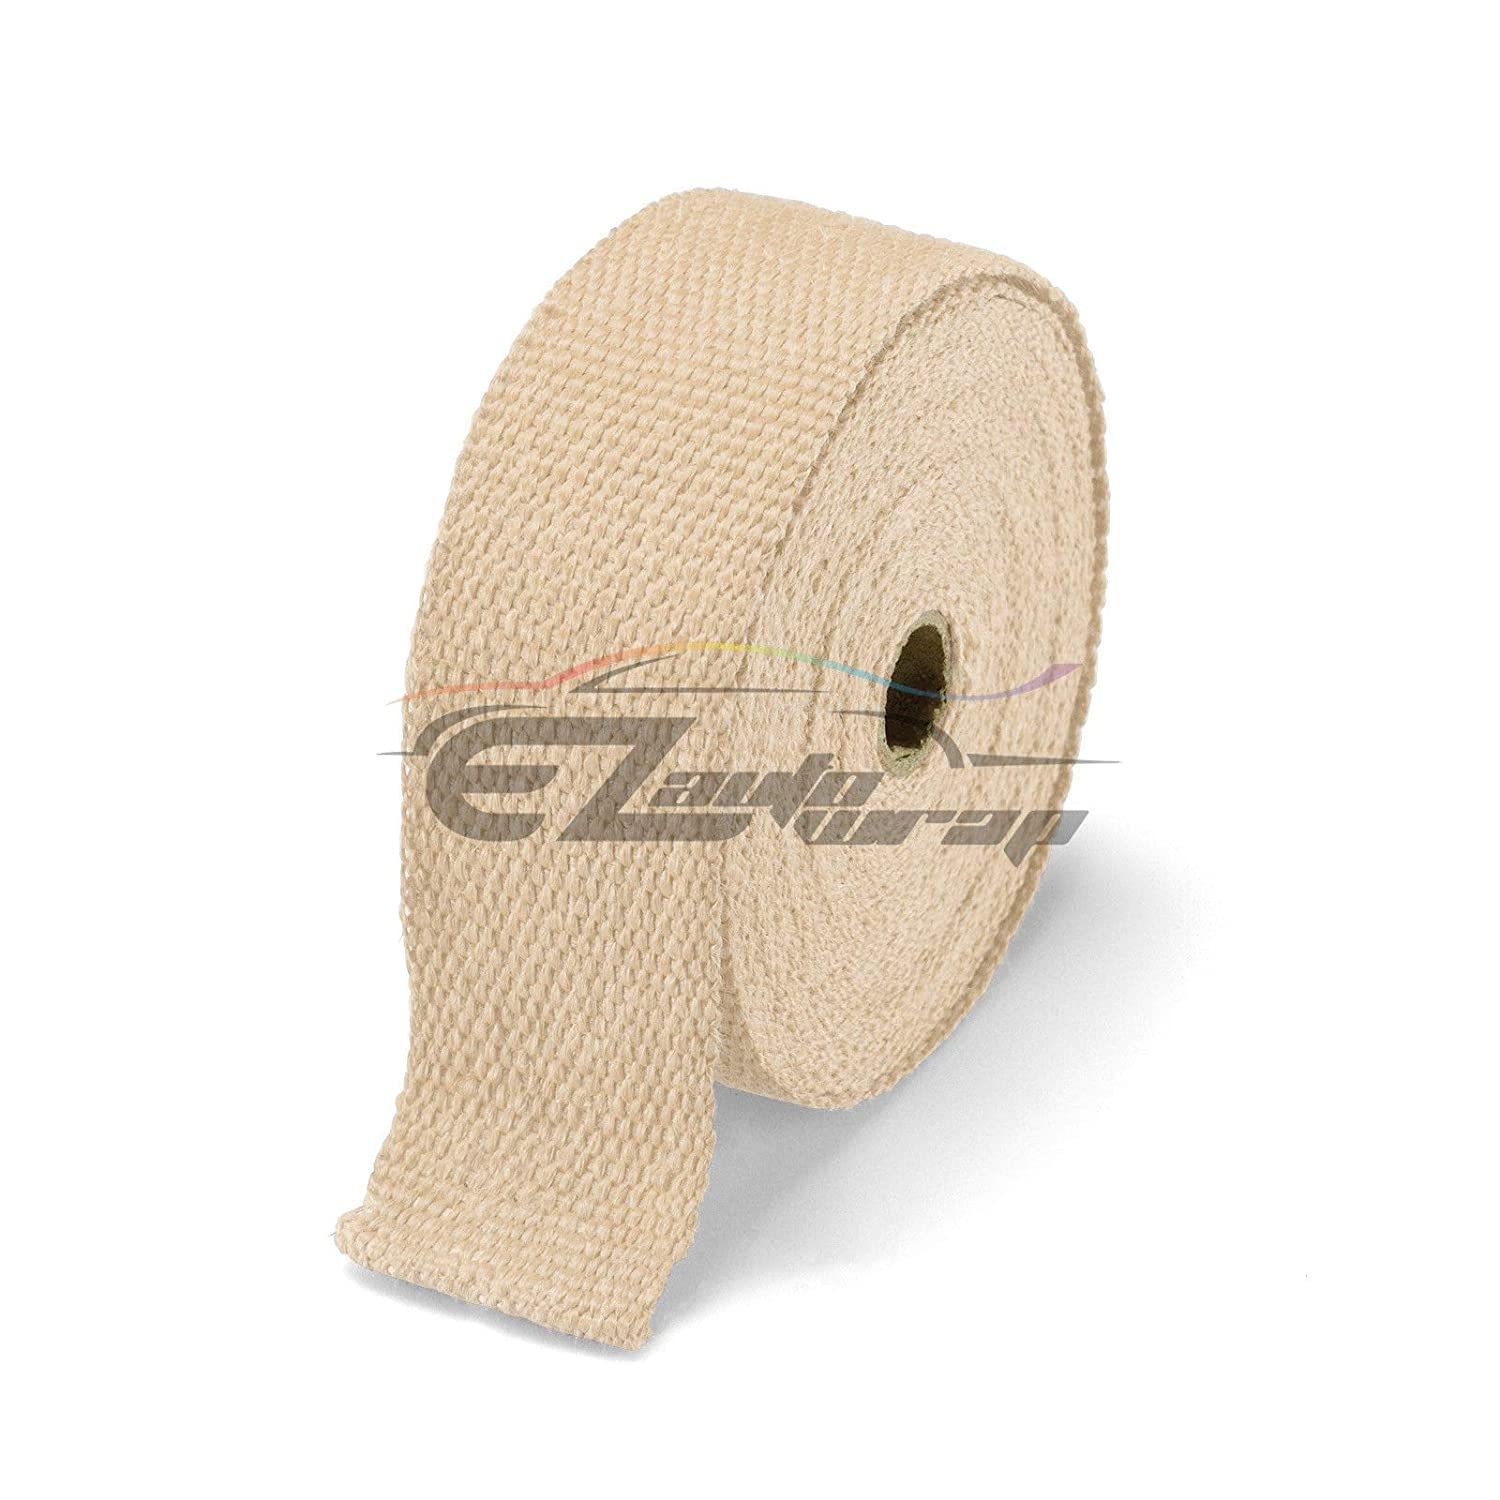 EZAUTOWRAP Teal Exhaust Pipe Insulation Thermal Heat Wrap 2 x 50 Motorcycle Header Protection Fiberglass Heat Shield 6X Stainless Ties